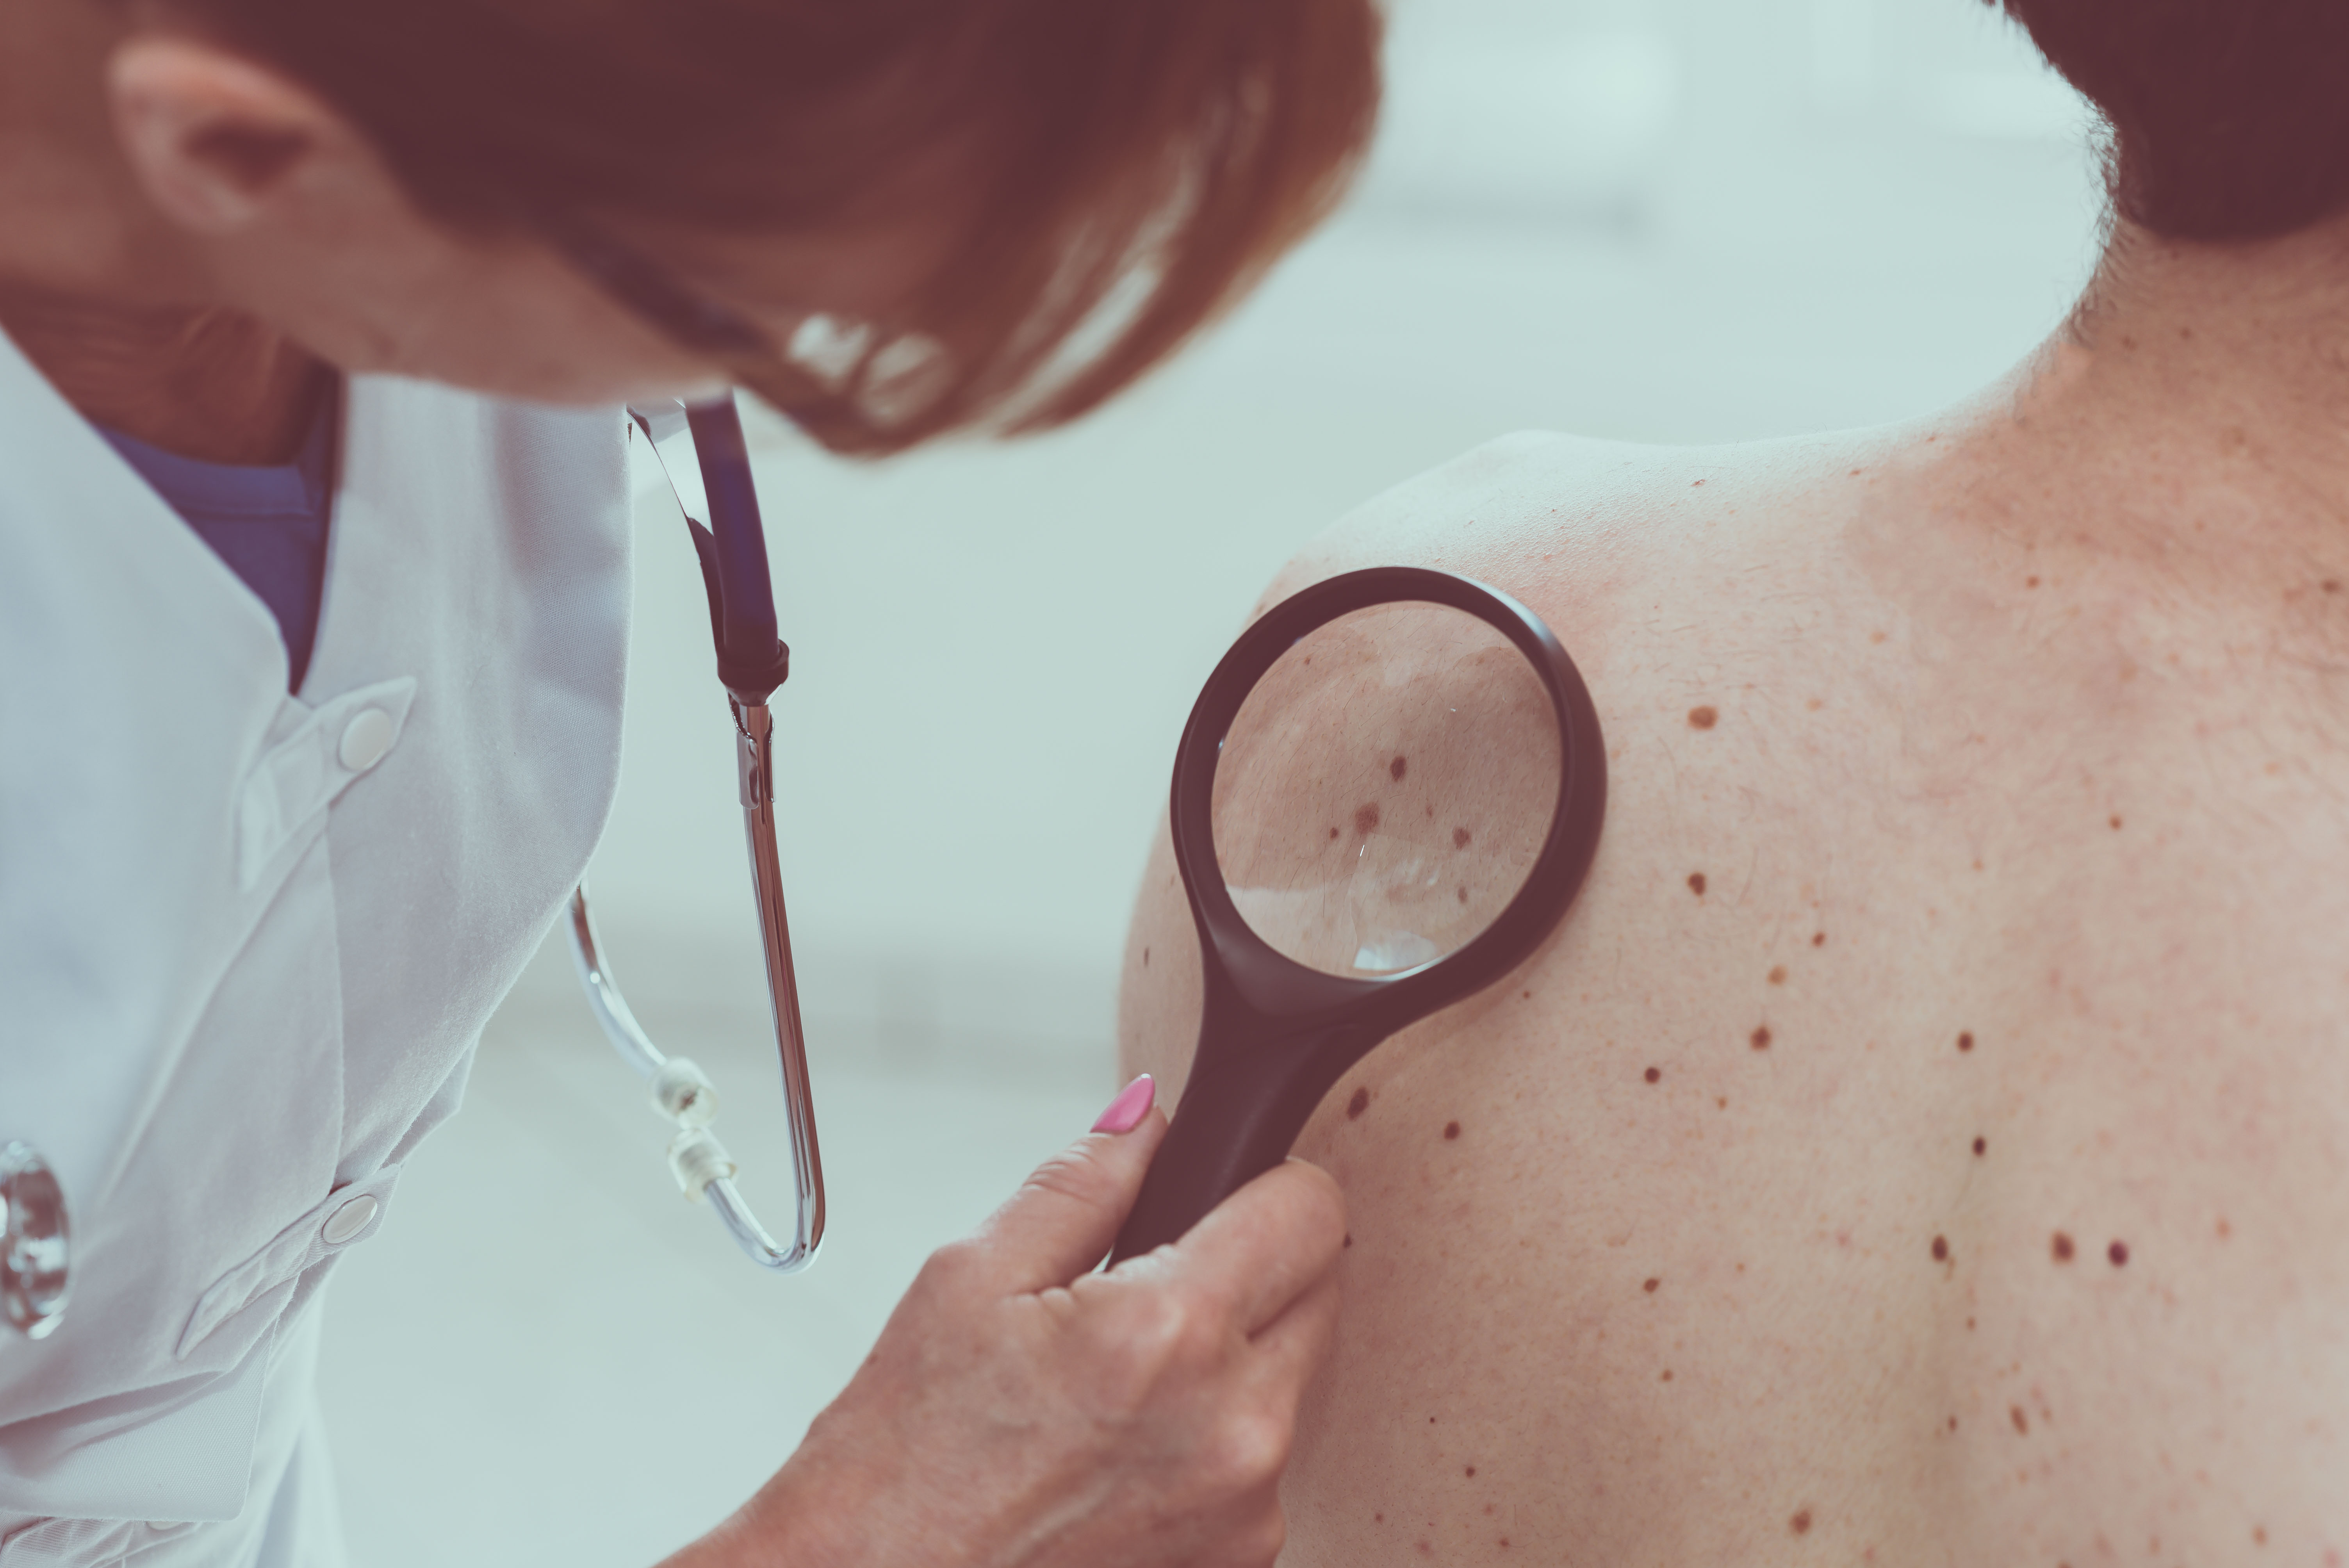 ea03ed9a3b2 Dermatologists offer tips on how to prevent and detect skin cancer ...